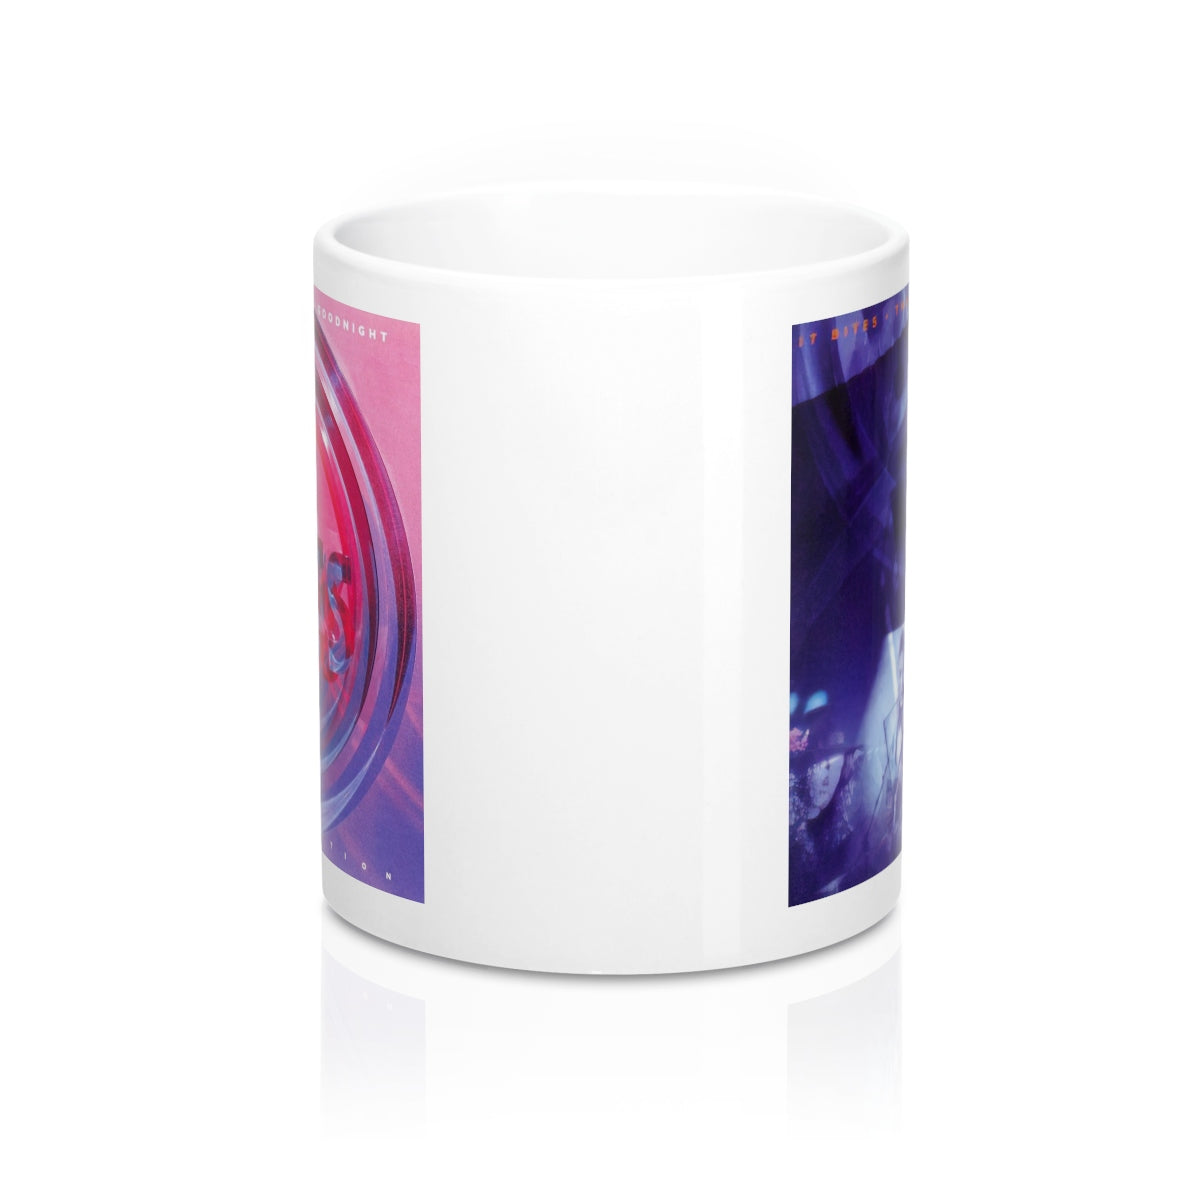 Thankyou And Goodnight Design Mug